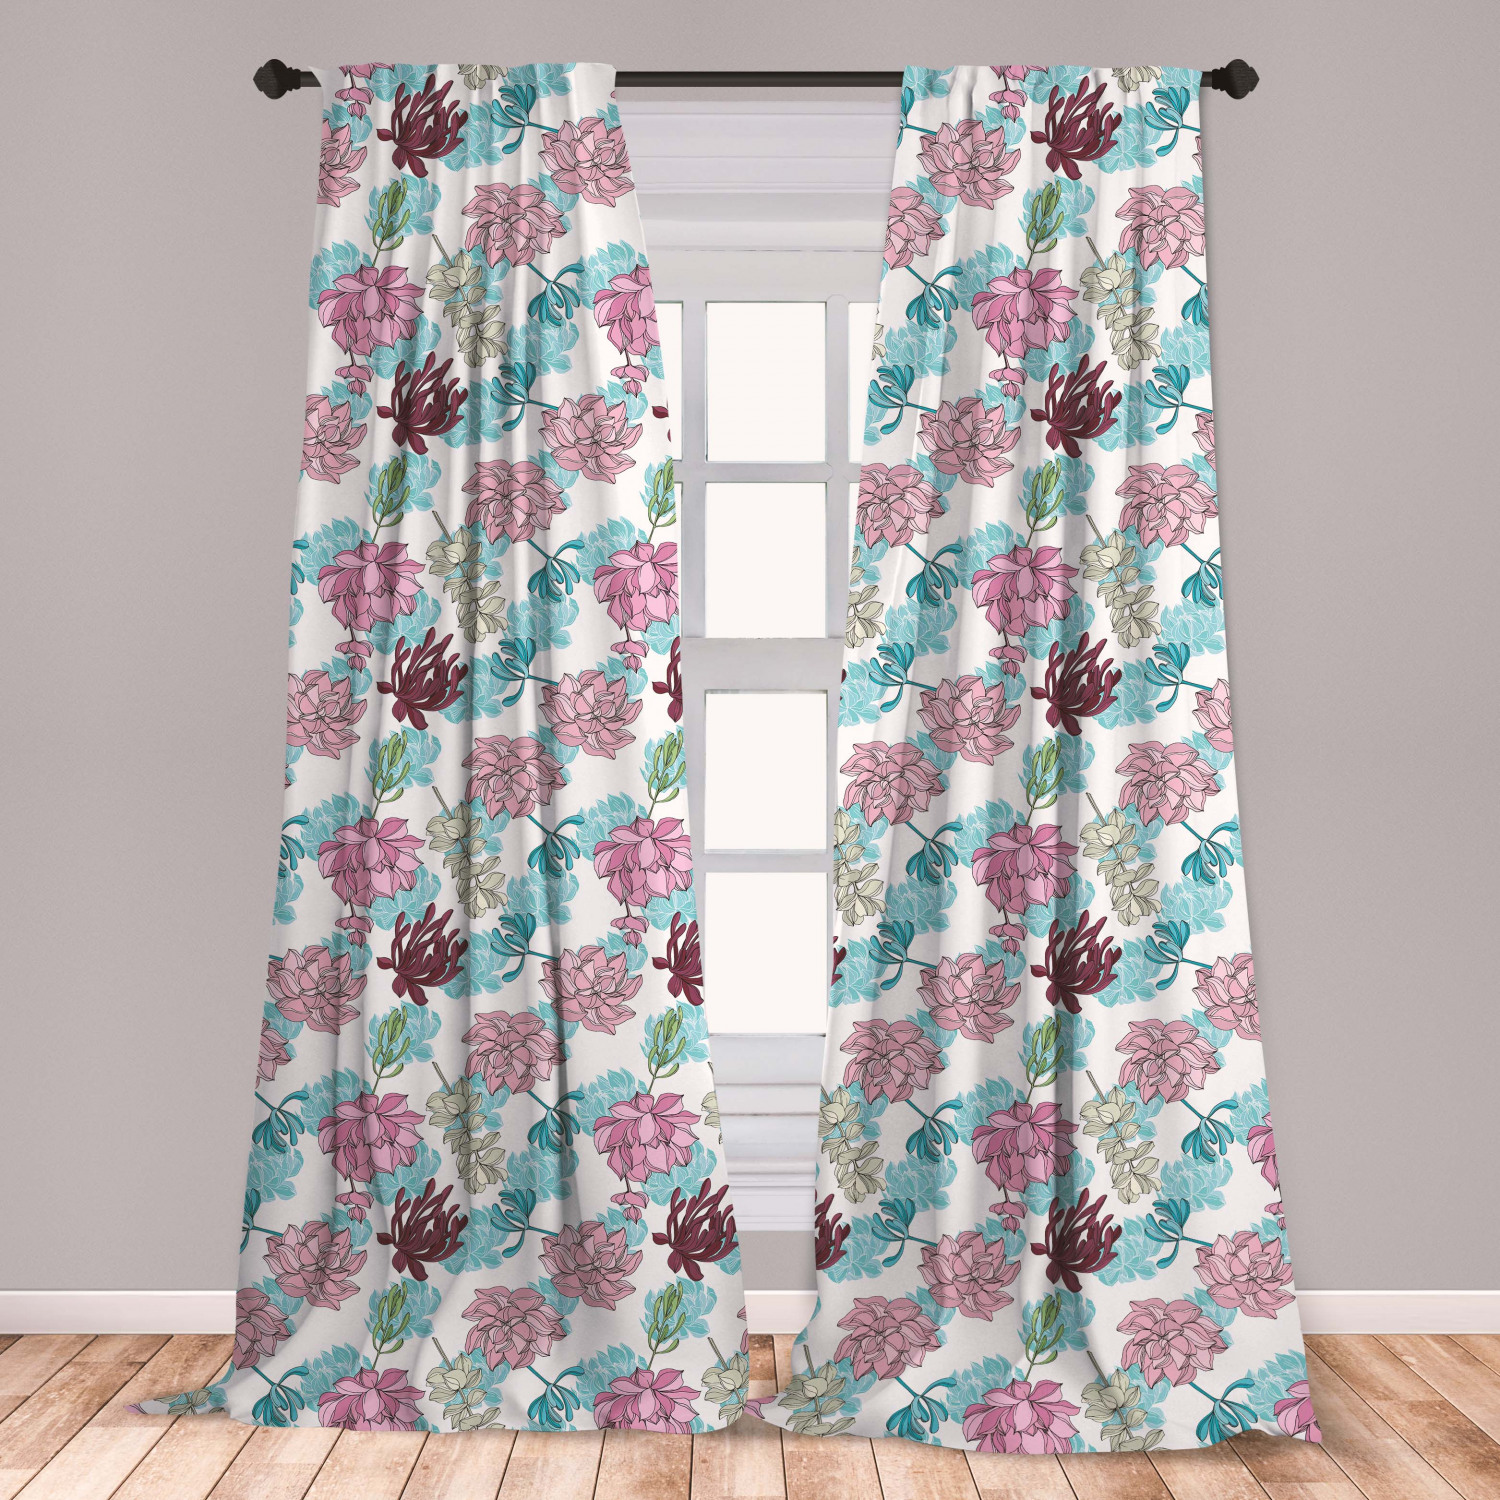 Curtains Drapes Tropic Pattern Microfiber Curtains 2 Panel Set Living Room Bedroom In 3 Sizes Home Garden Mbln Org